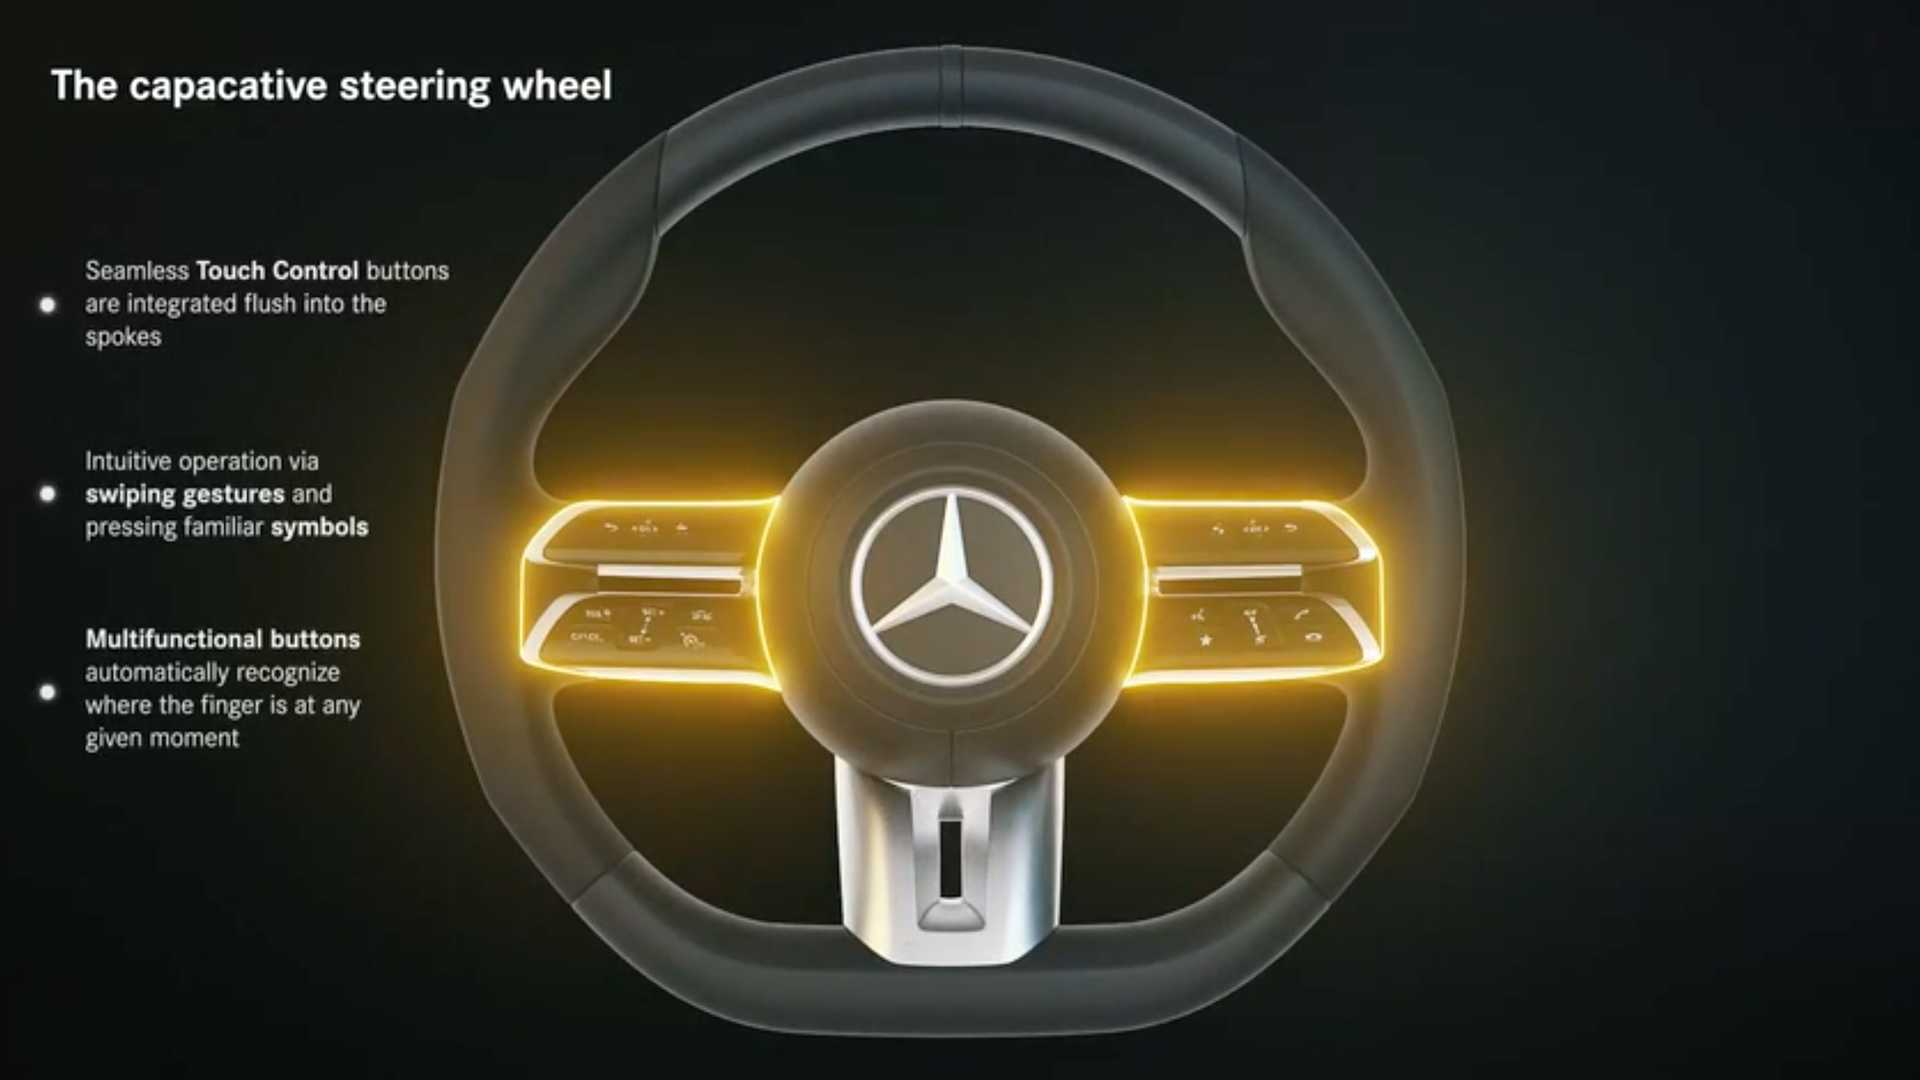 Mercedes E-Class Coupe, Cabriolet Capacitive Steering Wheel Detailed